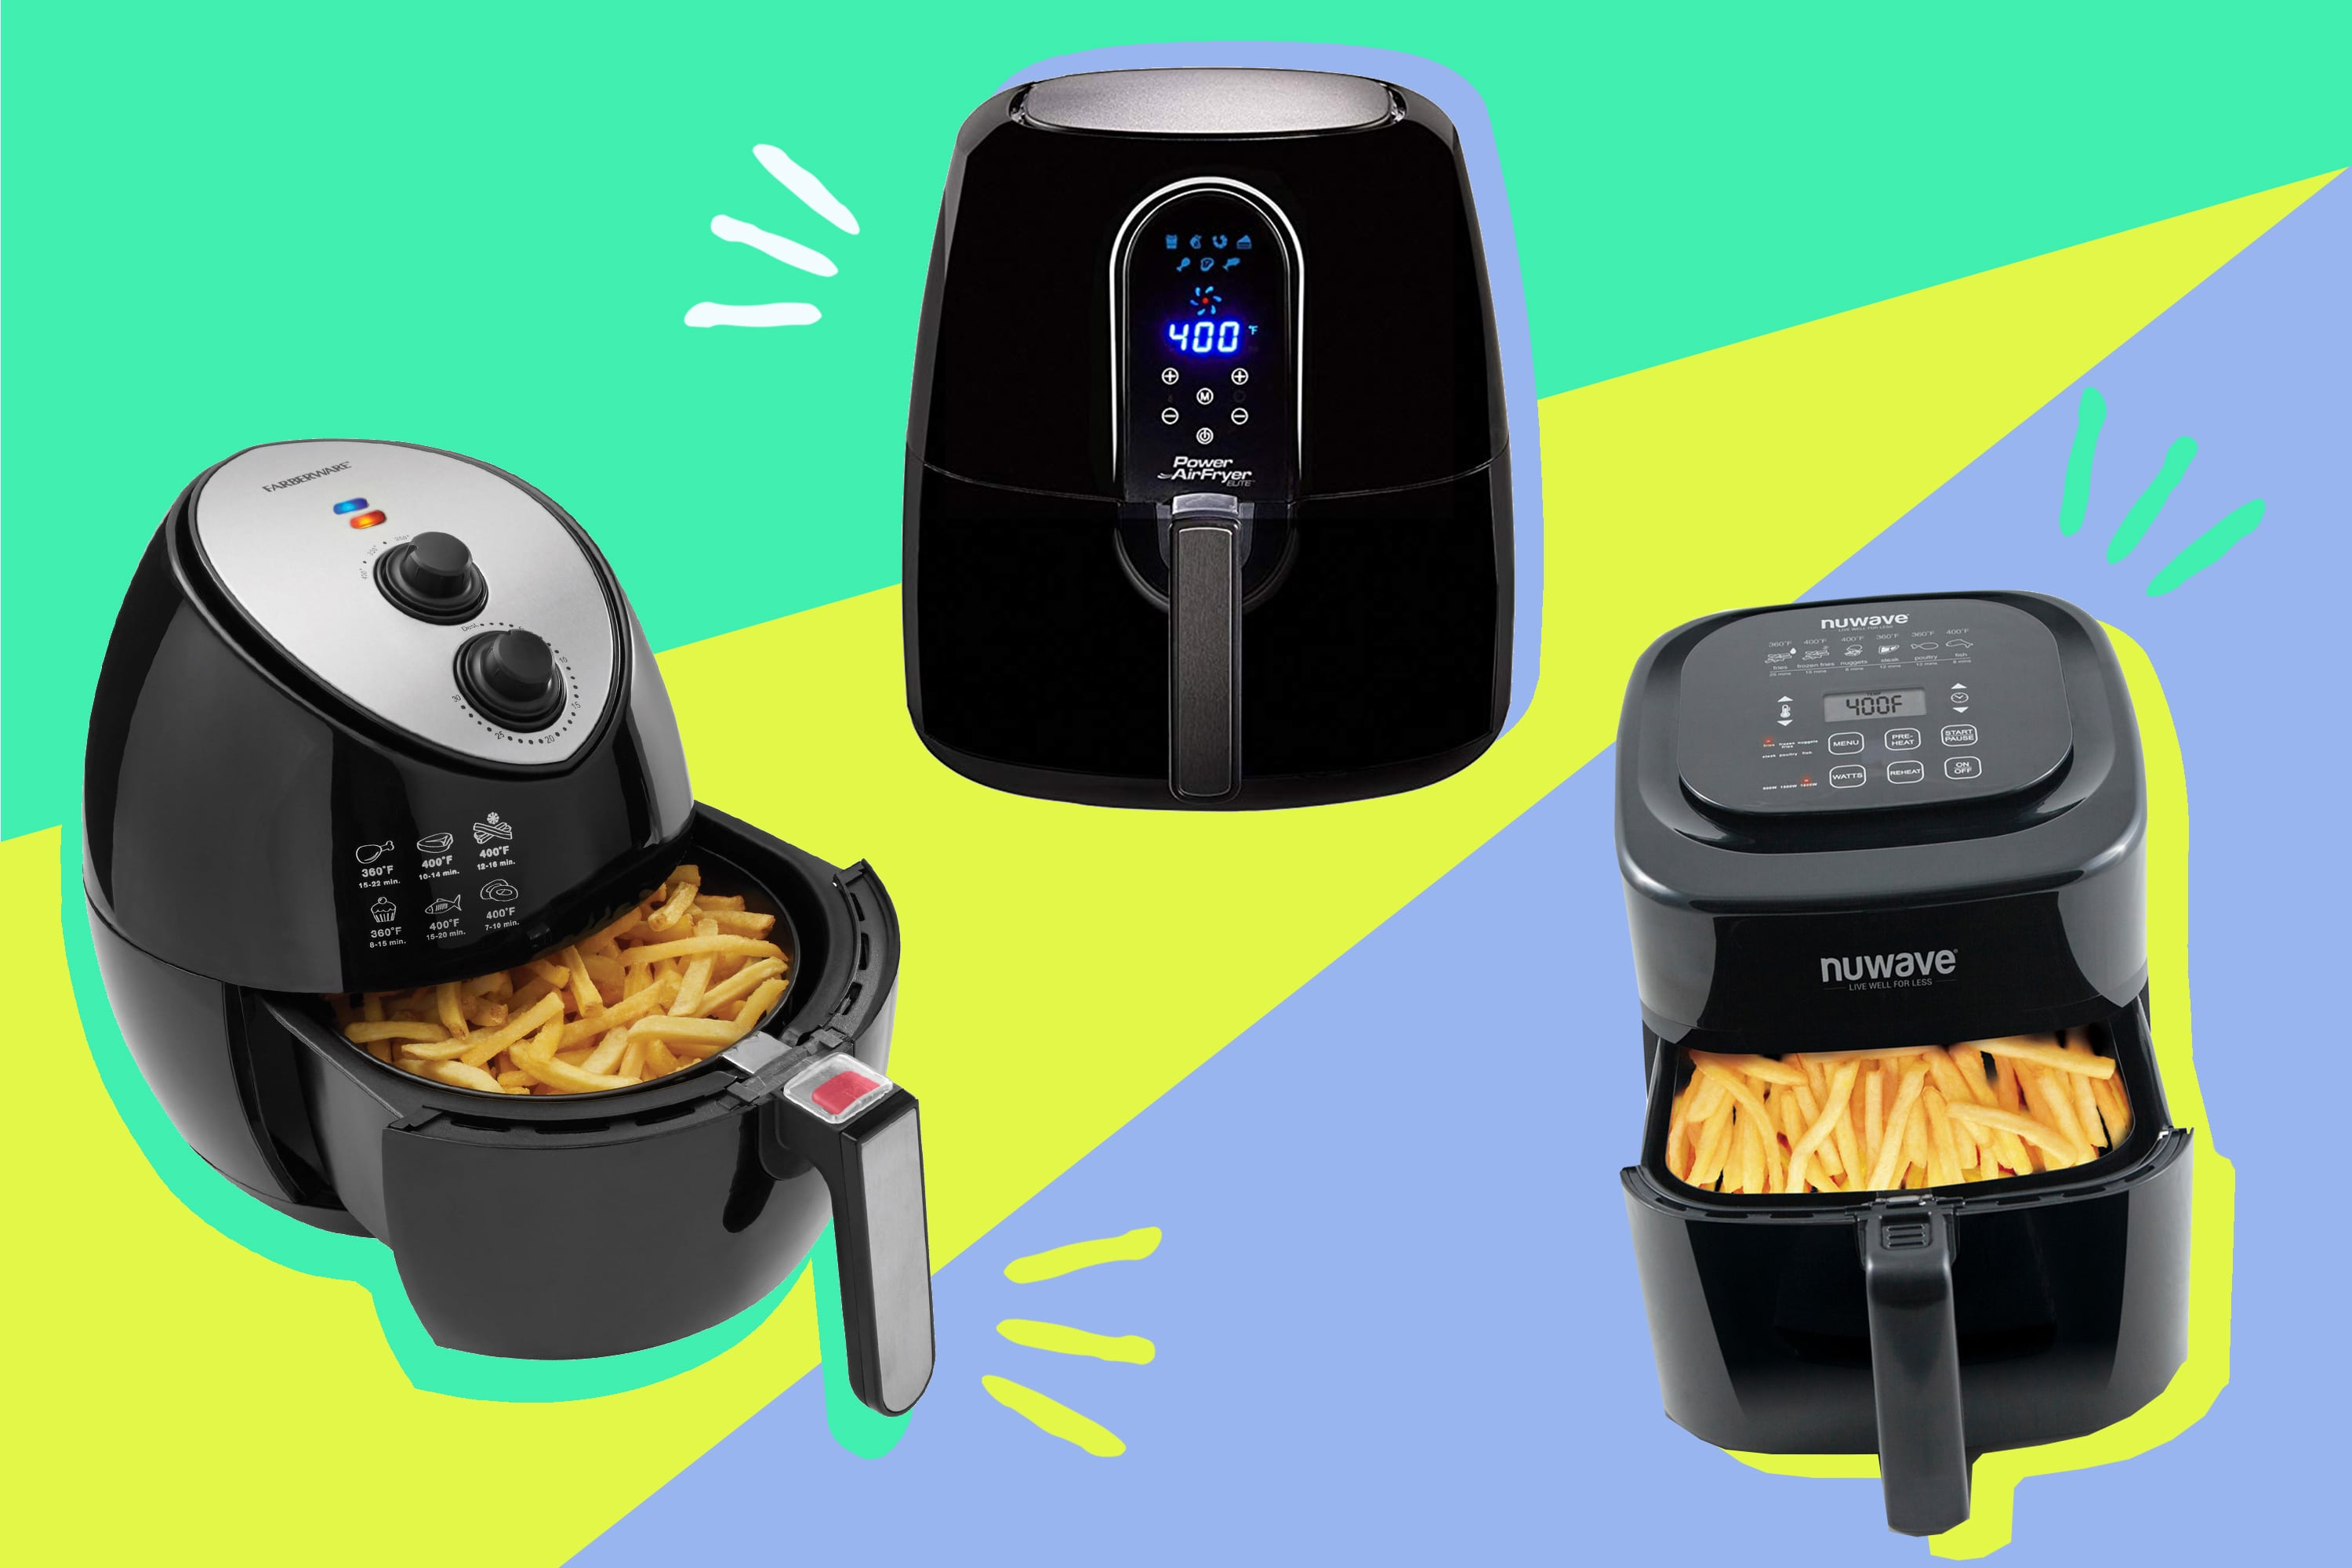 We Compared the NuWave, Power Air, and Farberware Air Fryers: Here's Our Candid Review | Kitchn